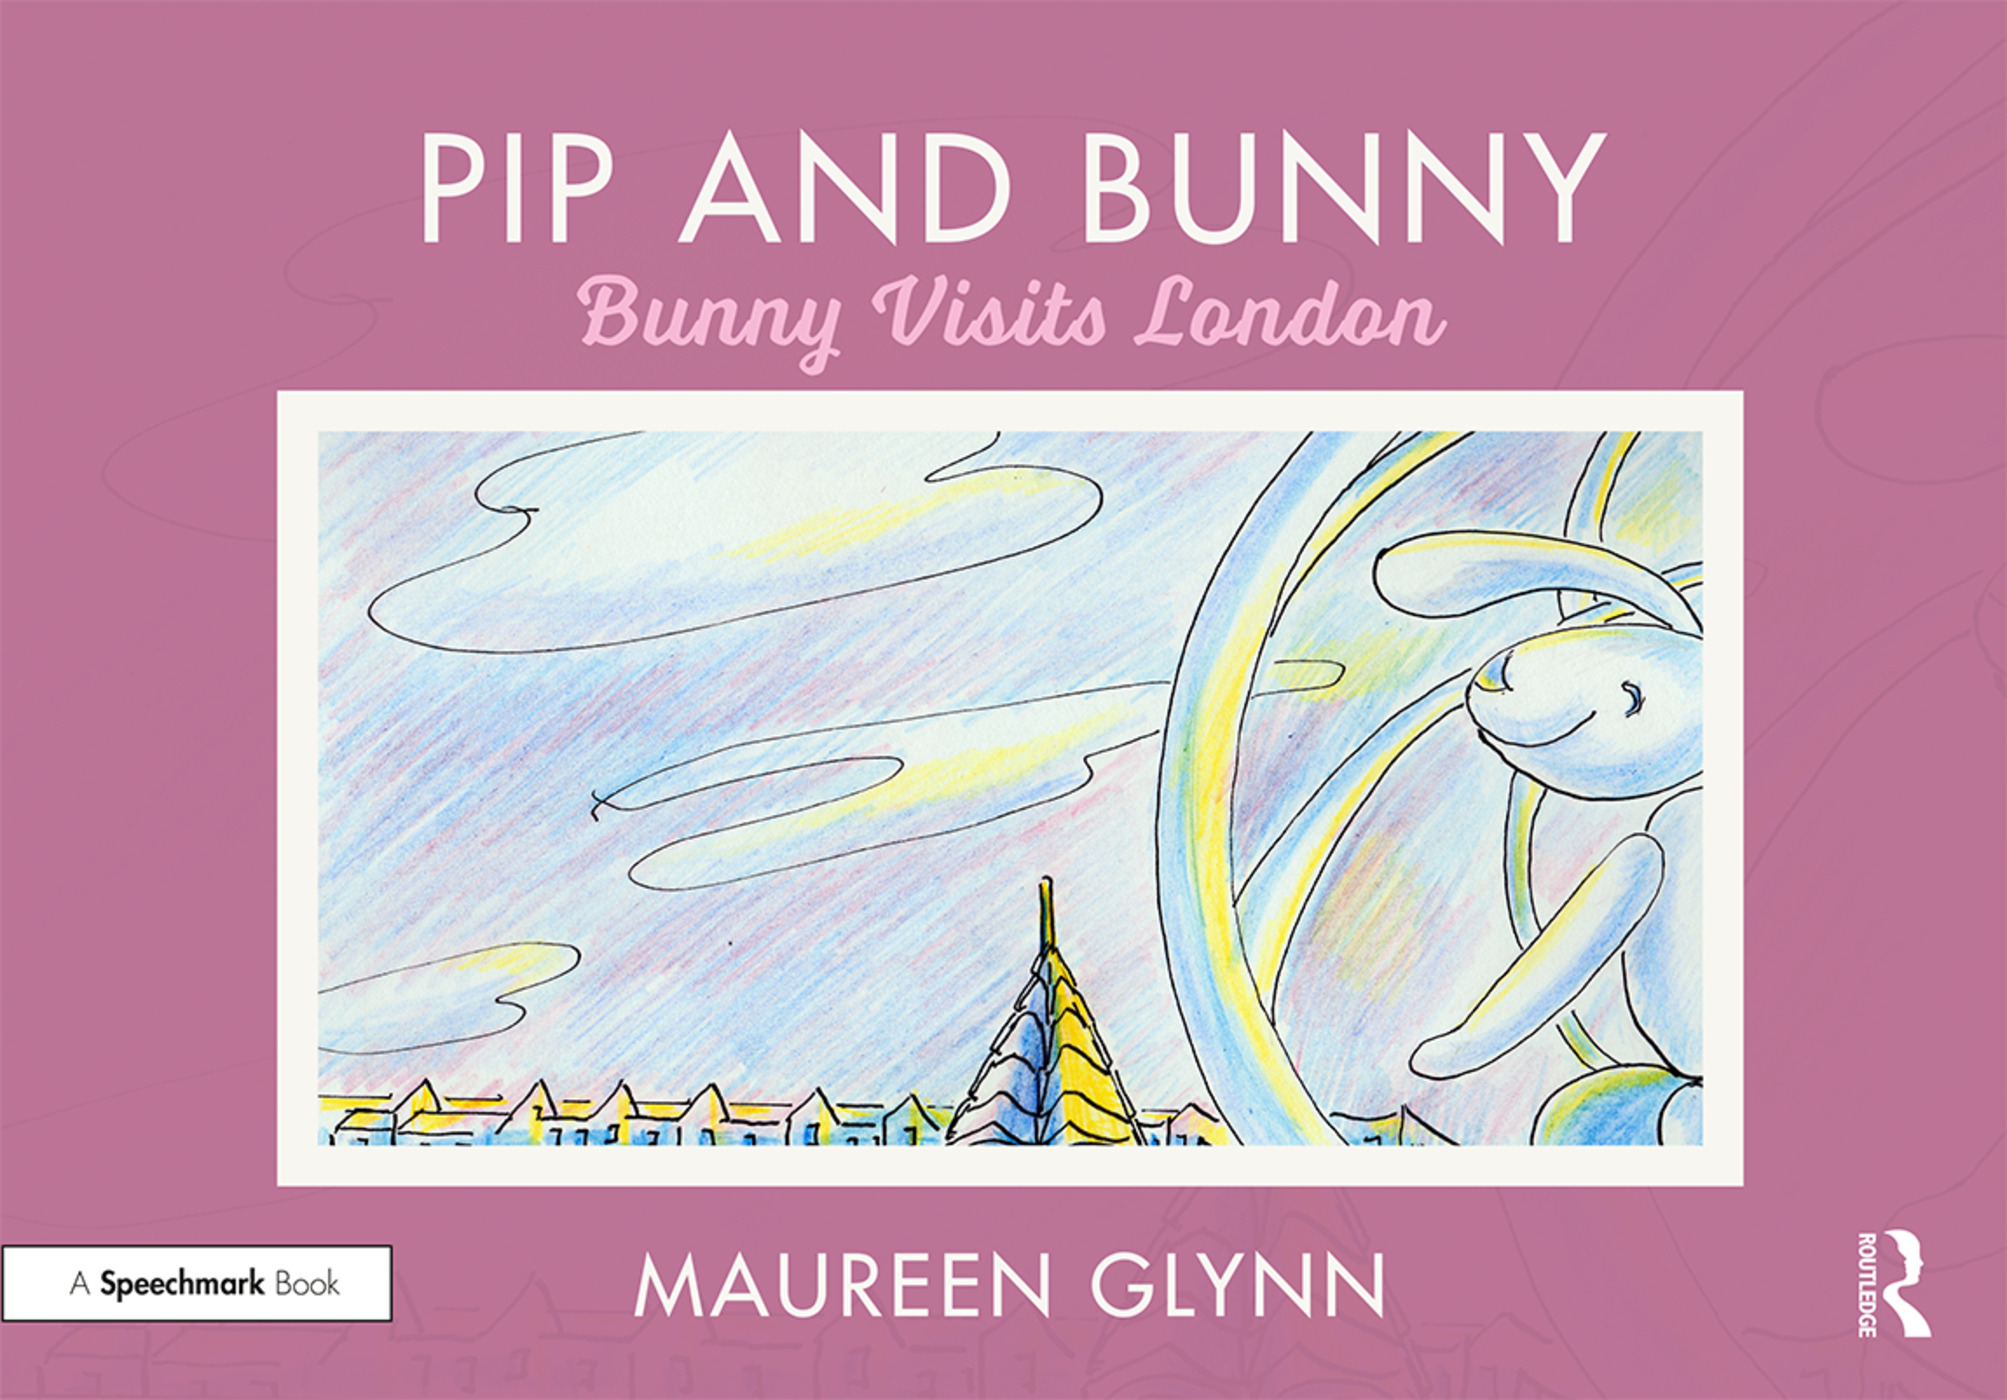 Pip and Bunny: Bunny Visits London book cover